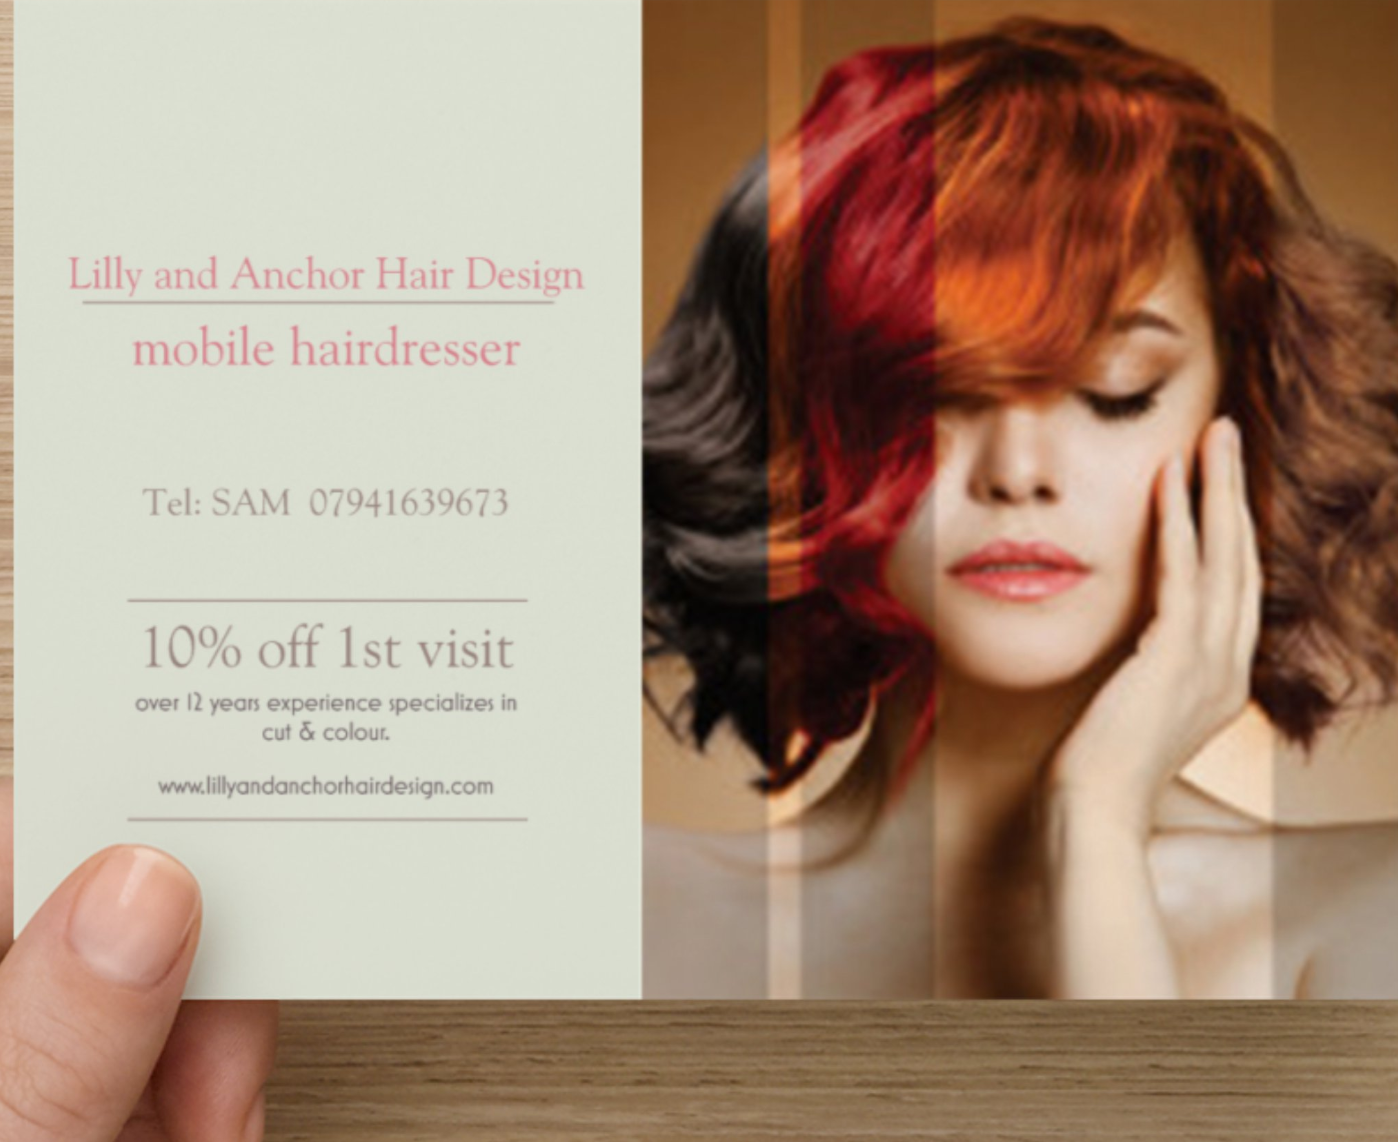 Lilly and Anchor Hair Design